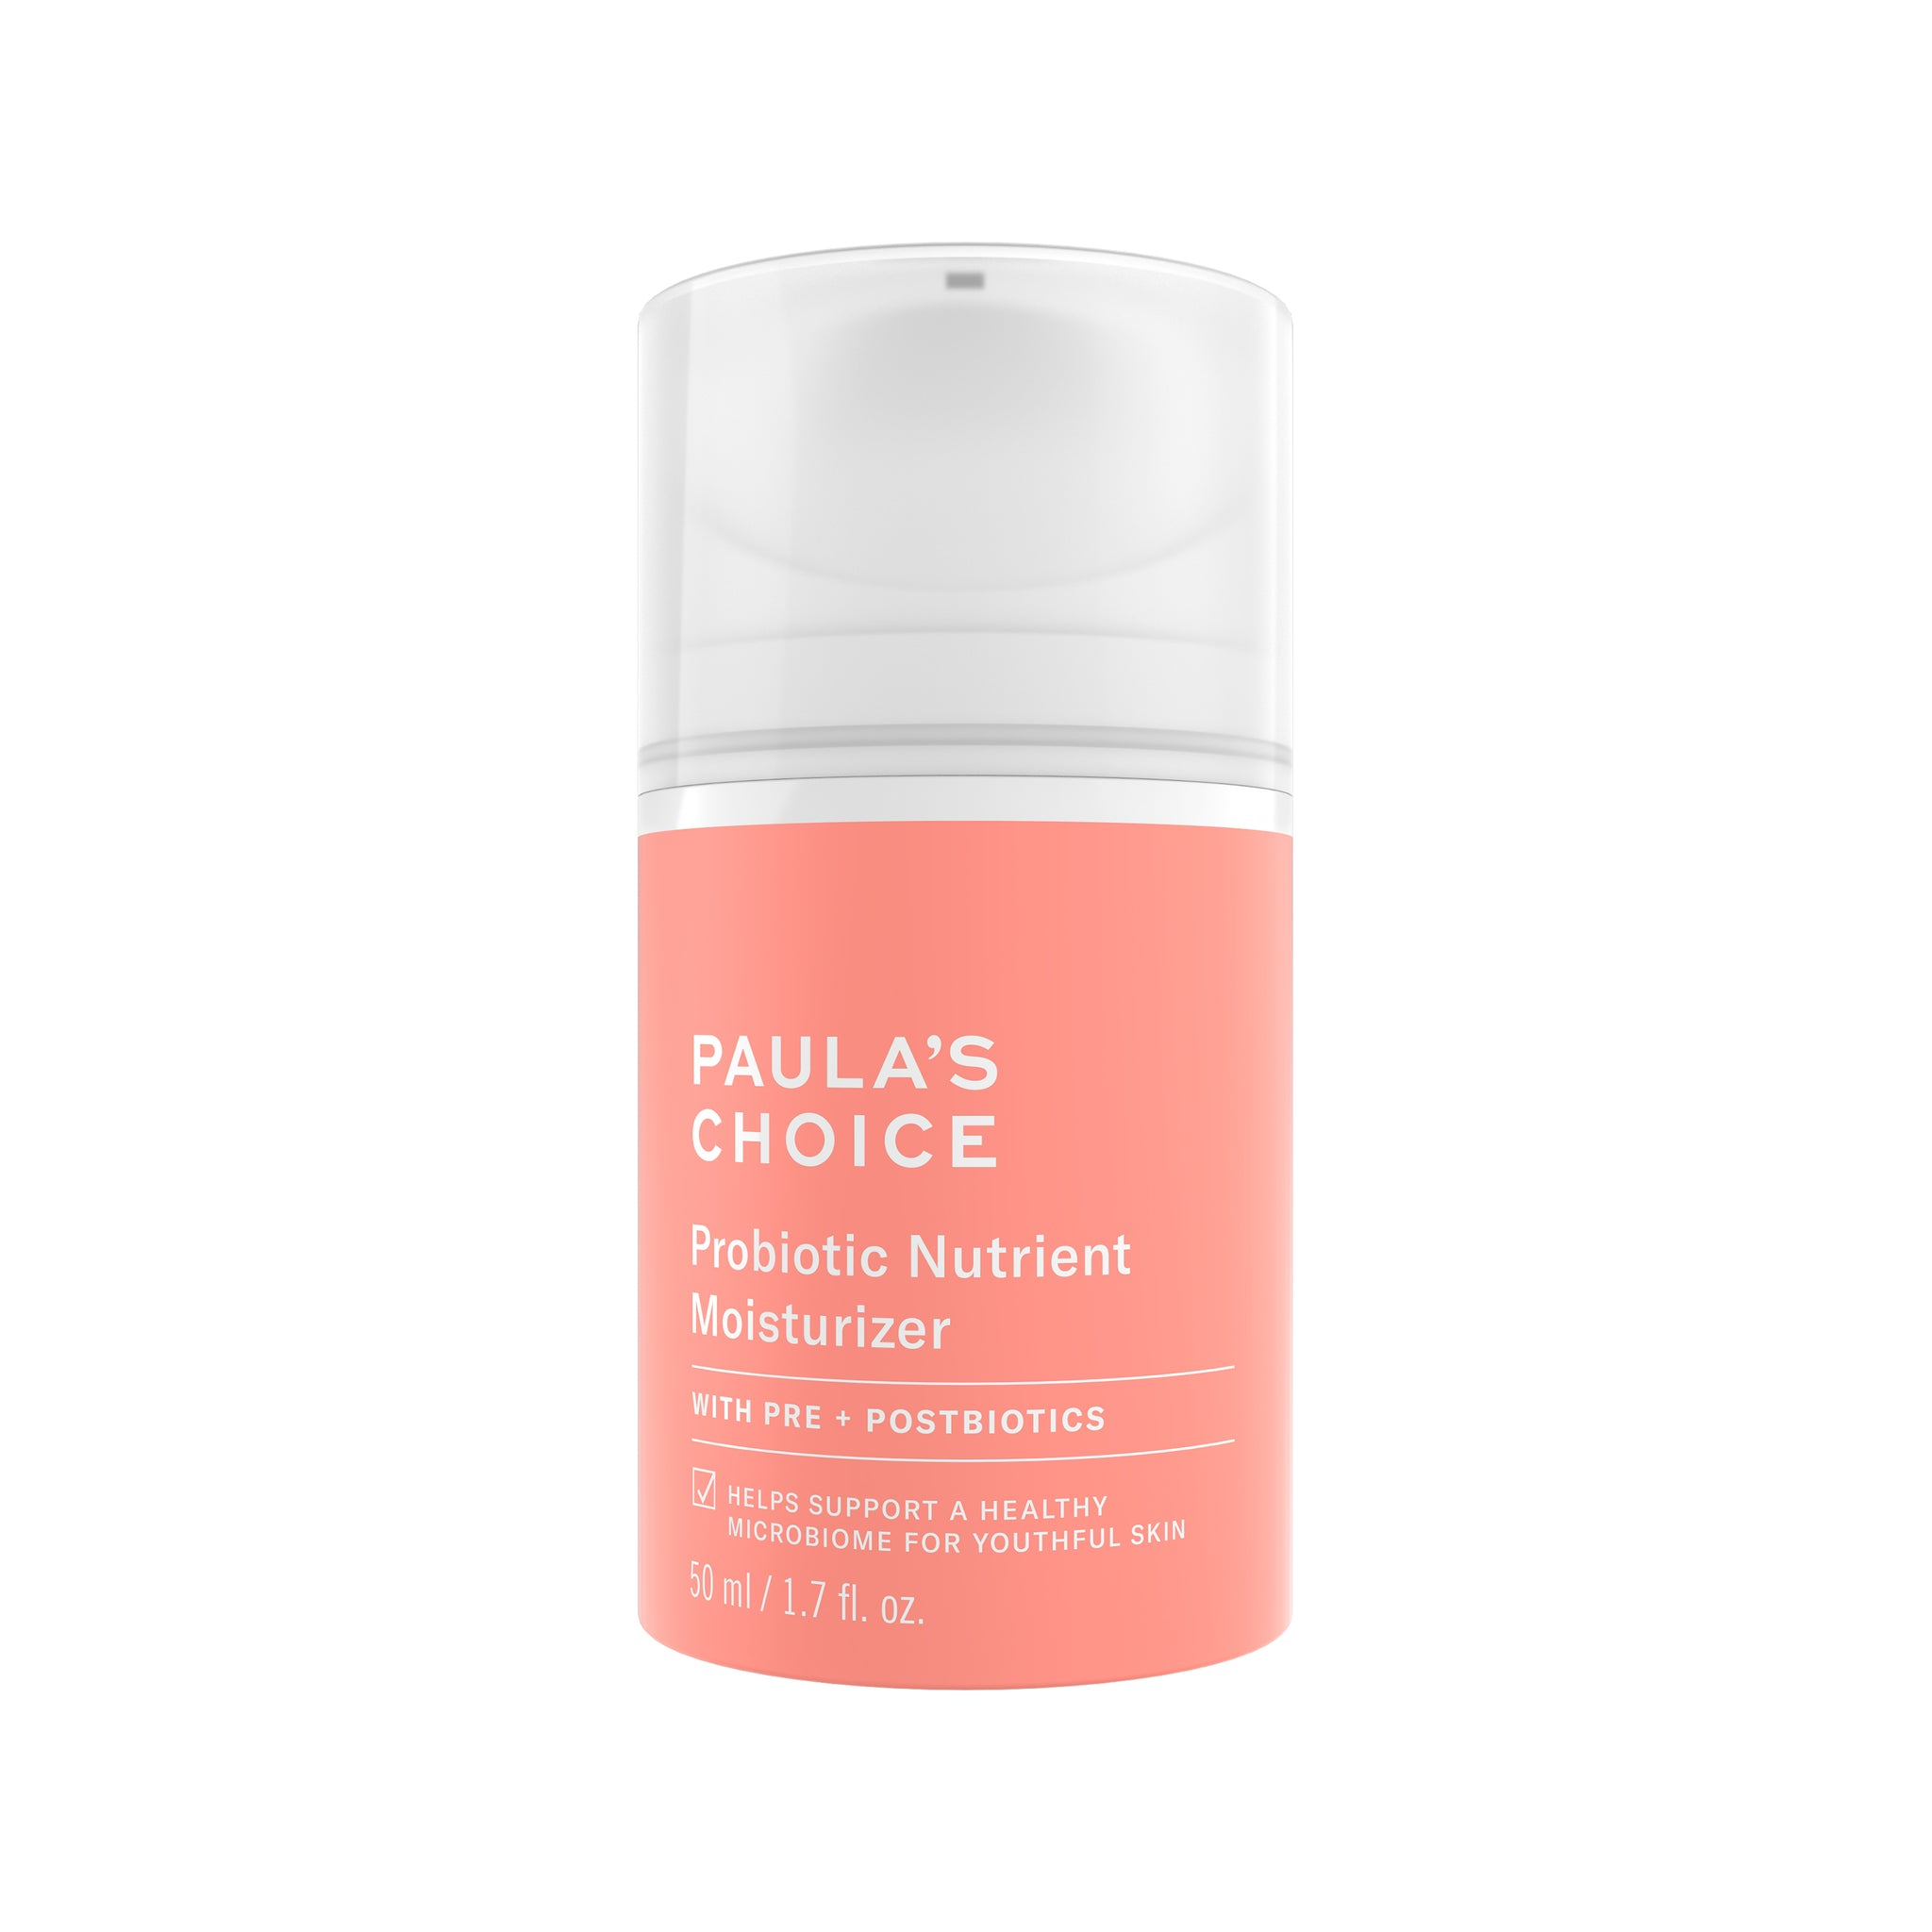 Paula's Choice Probiotic Nutrient Moisturizer